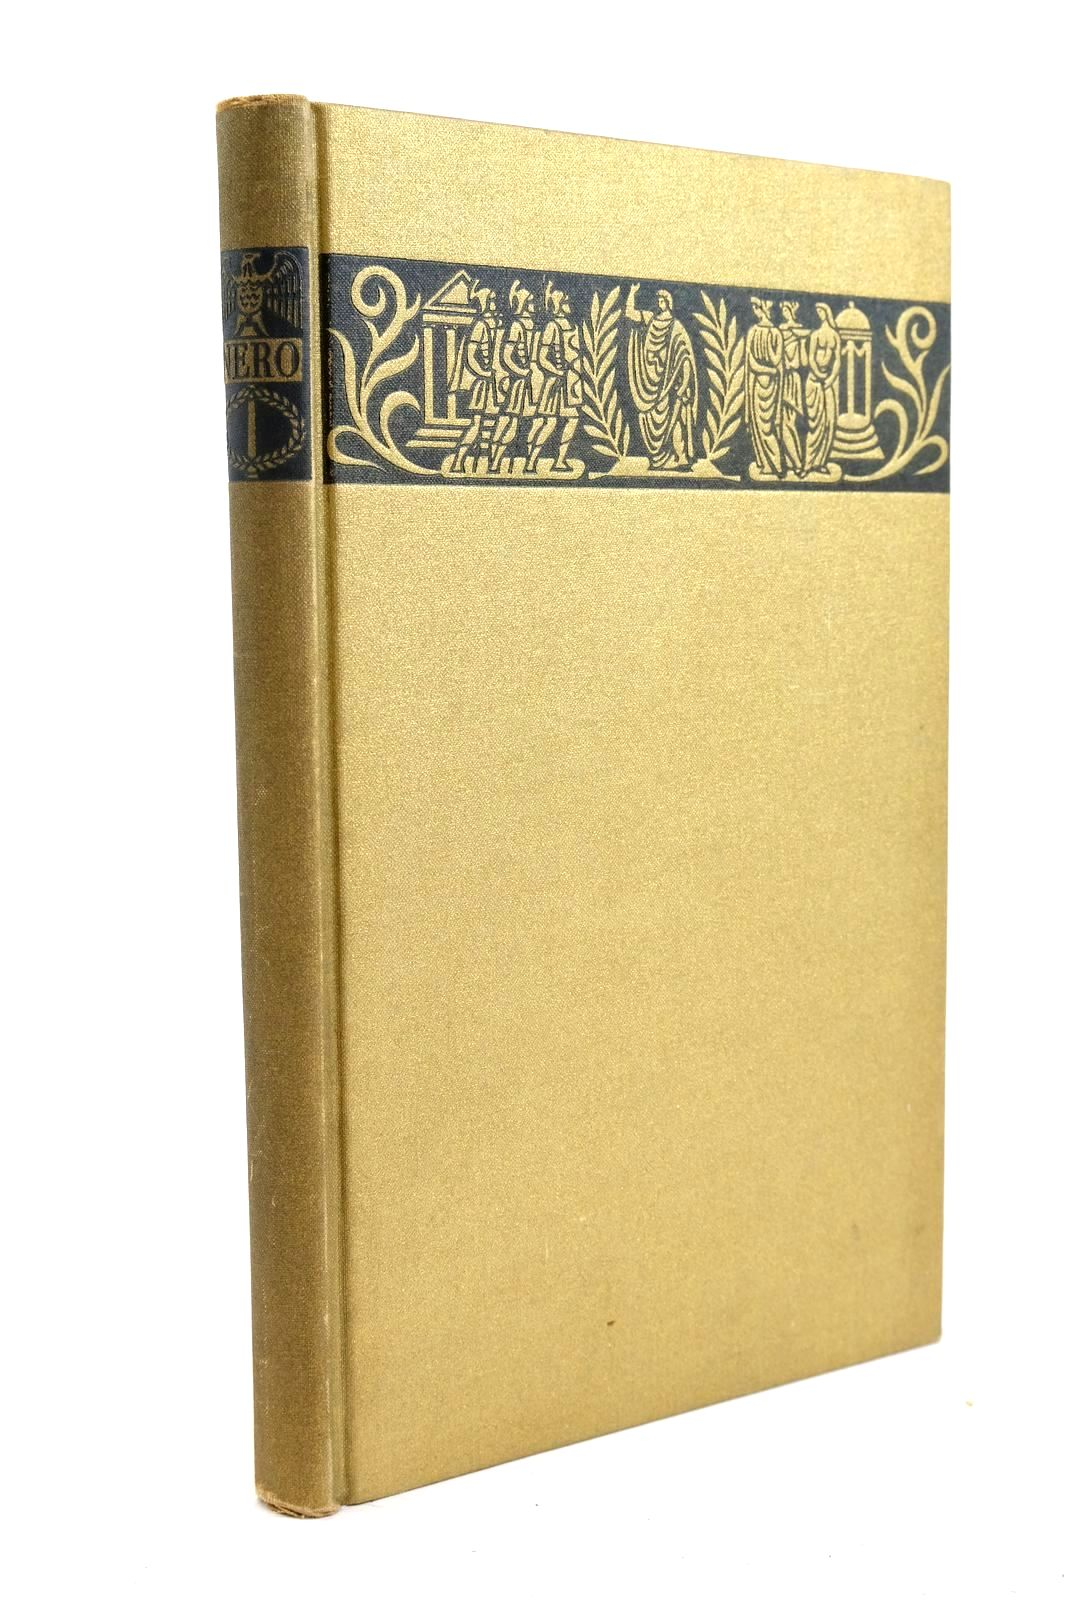 Photo of THE REIGN OF NERO written by Ramsay, George Gilbert Tacitus, Cornelius illustrated by Fraser, Eric published by Folio Society (STOCK CODE: 1320944)  for sale by Stella & Rose's Books